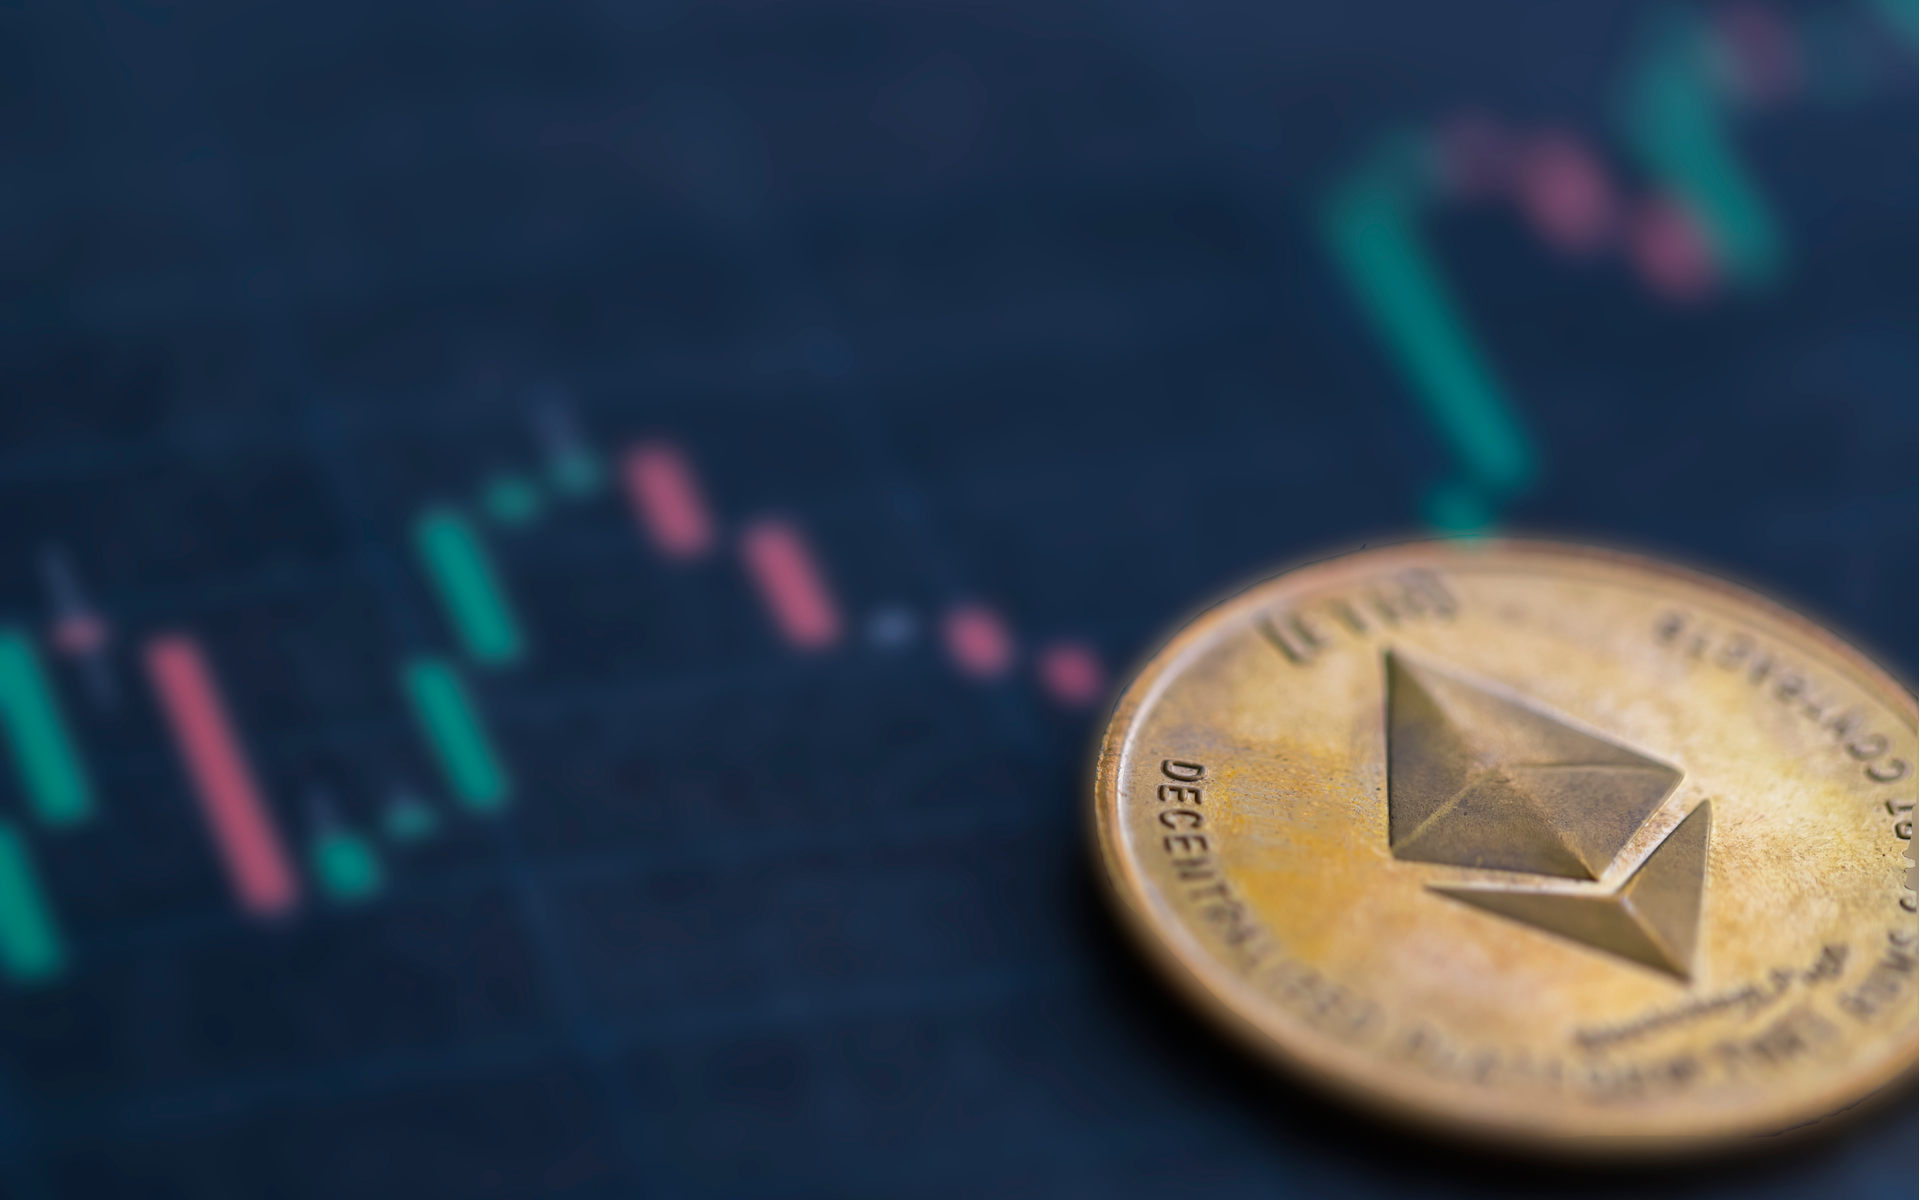 Ethereum (ETH) Getting Ready for Another Shot Above $260